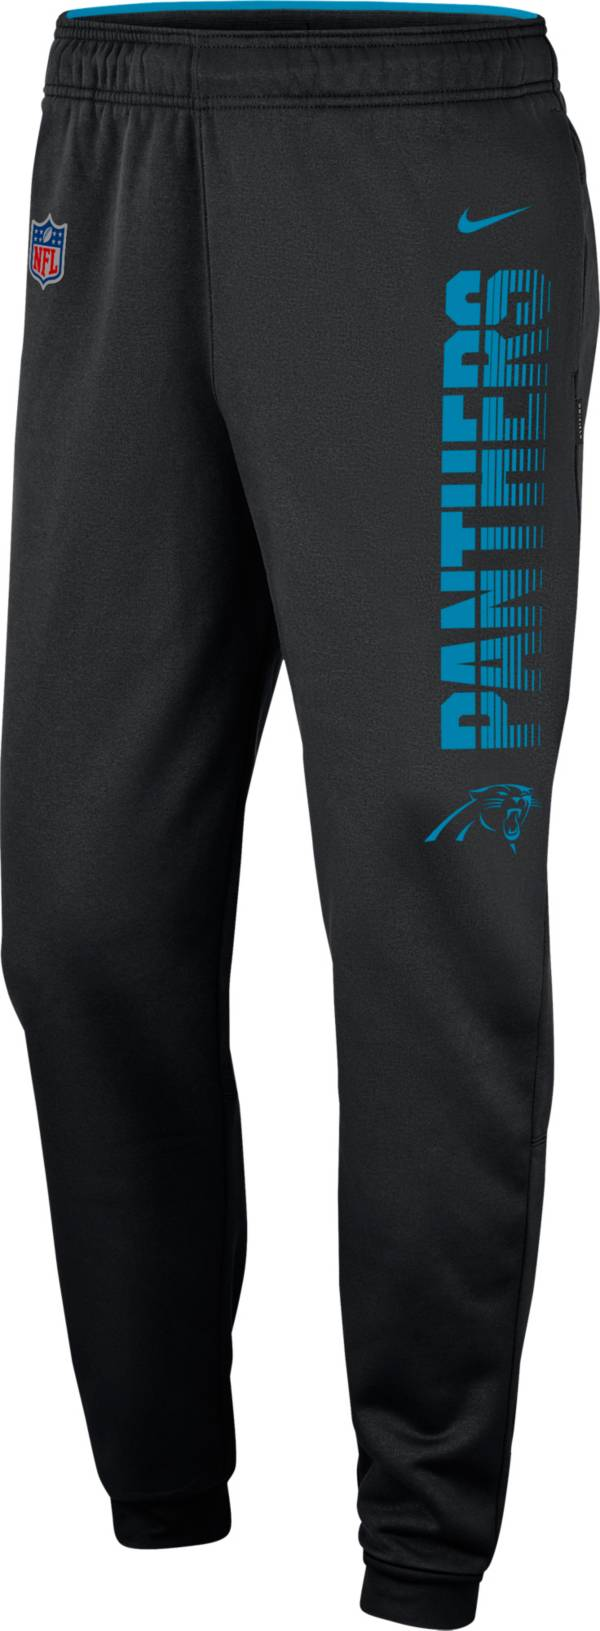 Nike Men's Carolina Panthers Sideline Therma-FIT Performance Black Pants product image